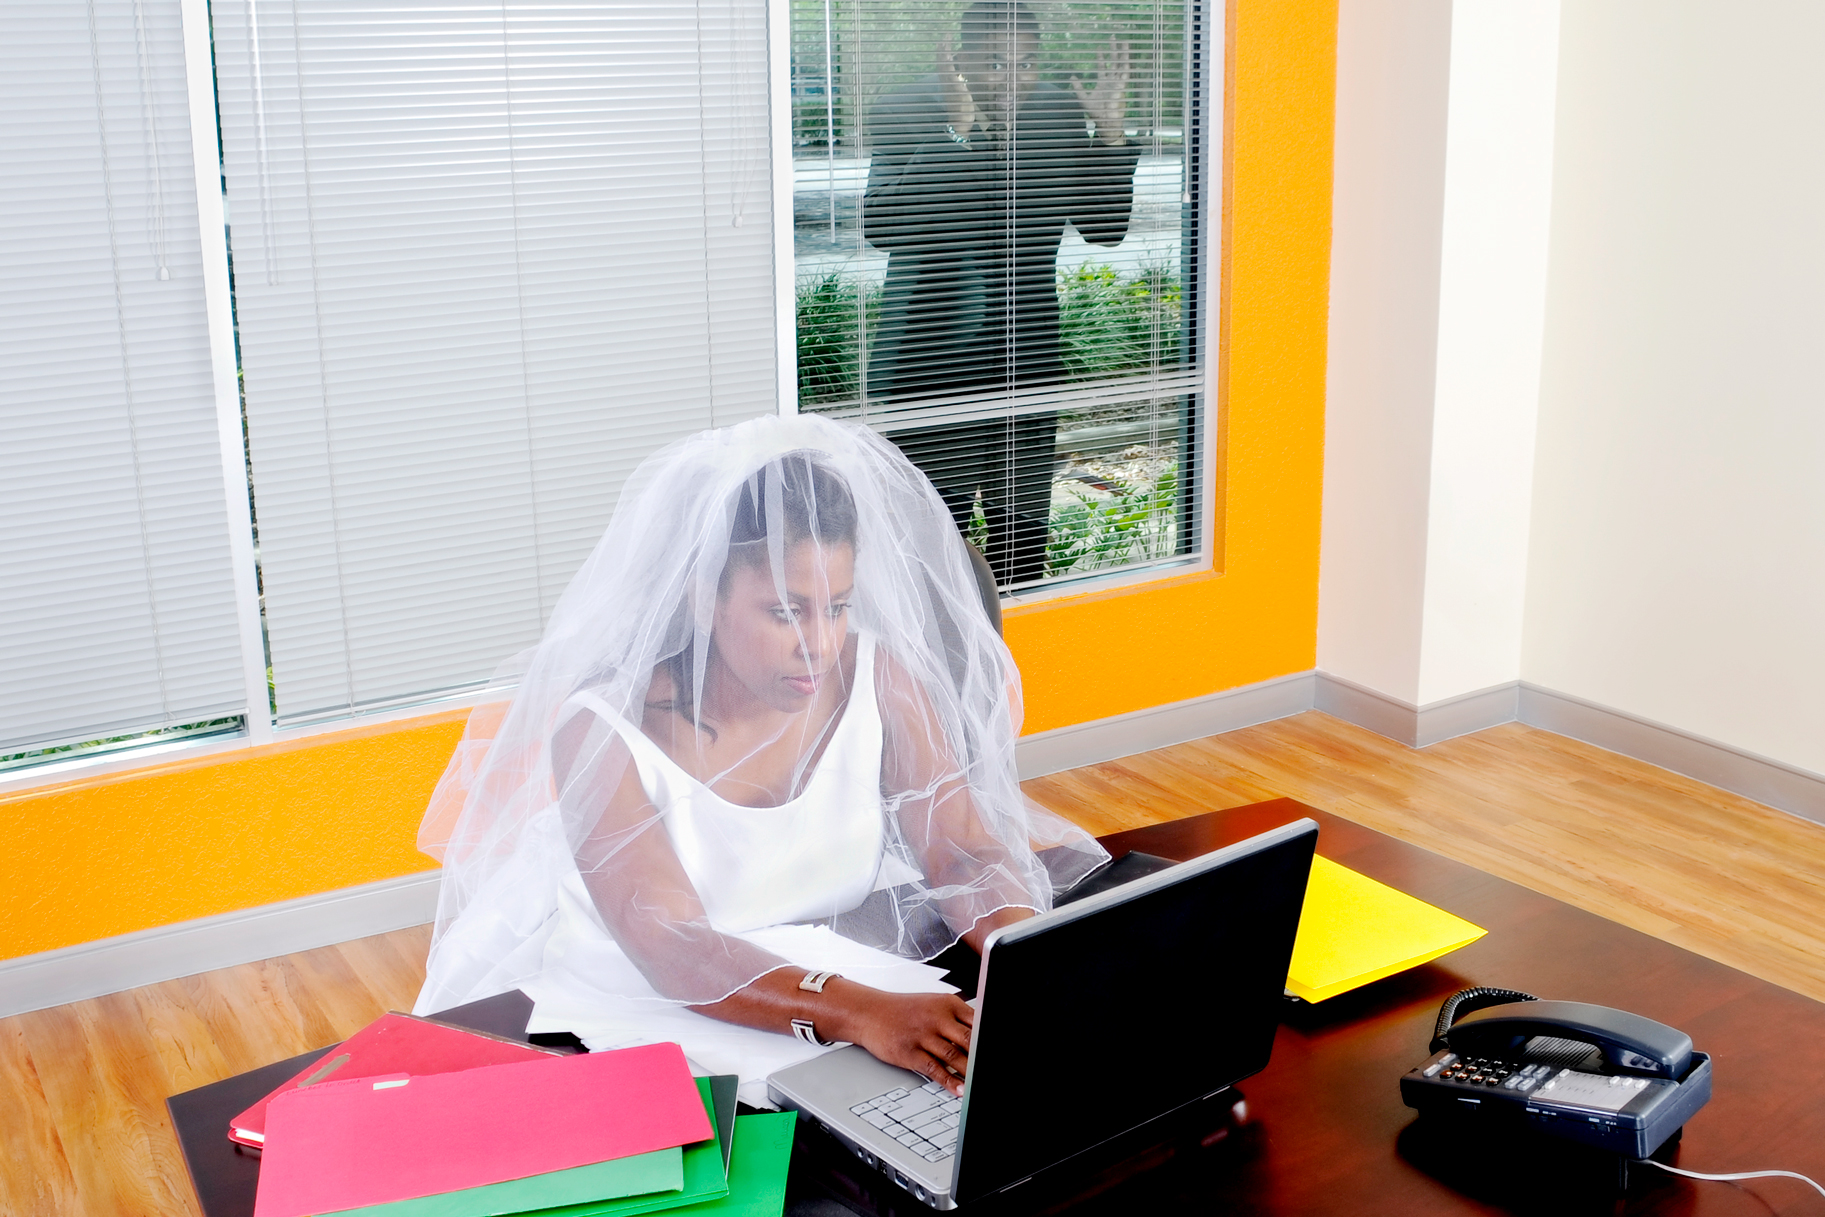 Married Women Now Dumping Maiden Name In Under 30 Minutes